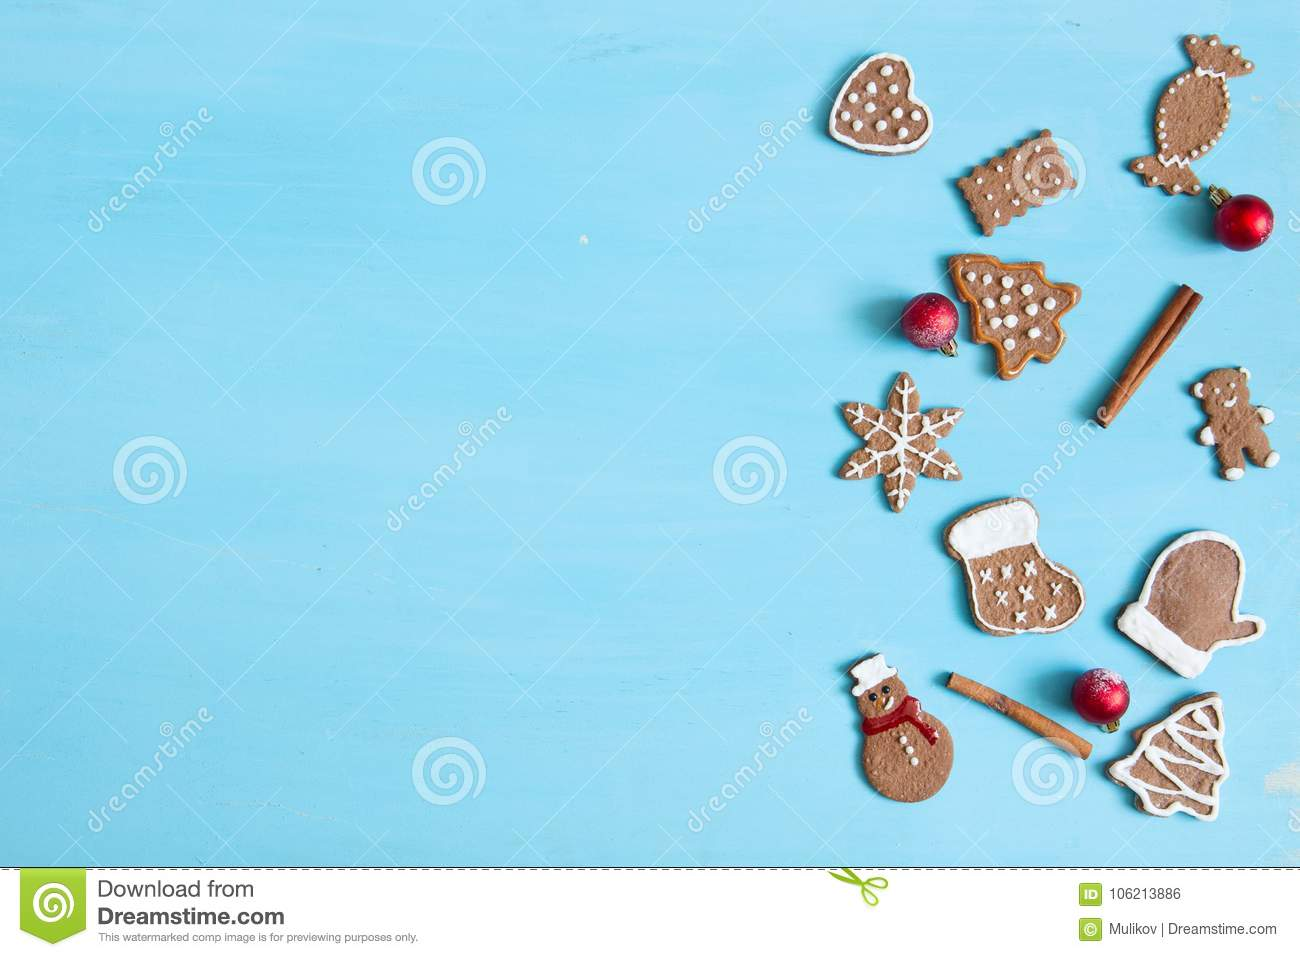 Christmas baking background. Christmas gingerbread cookies and spices on blue table. Top view